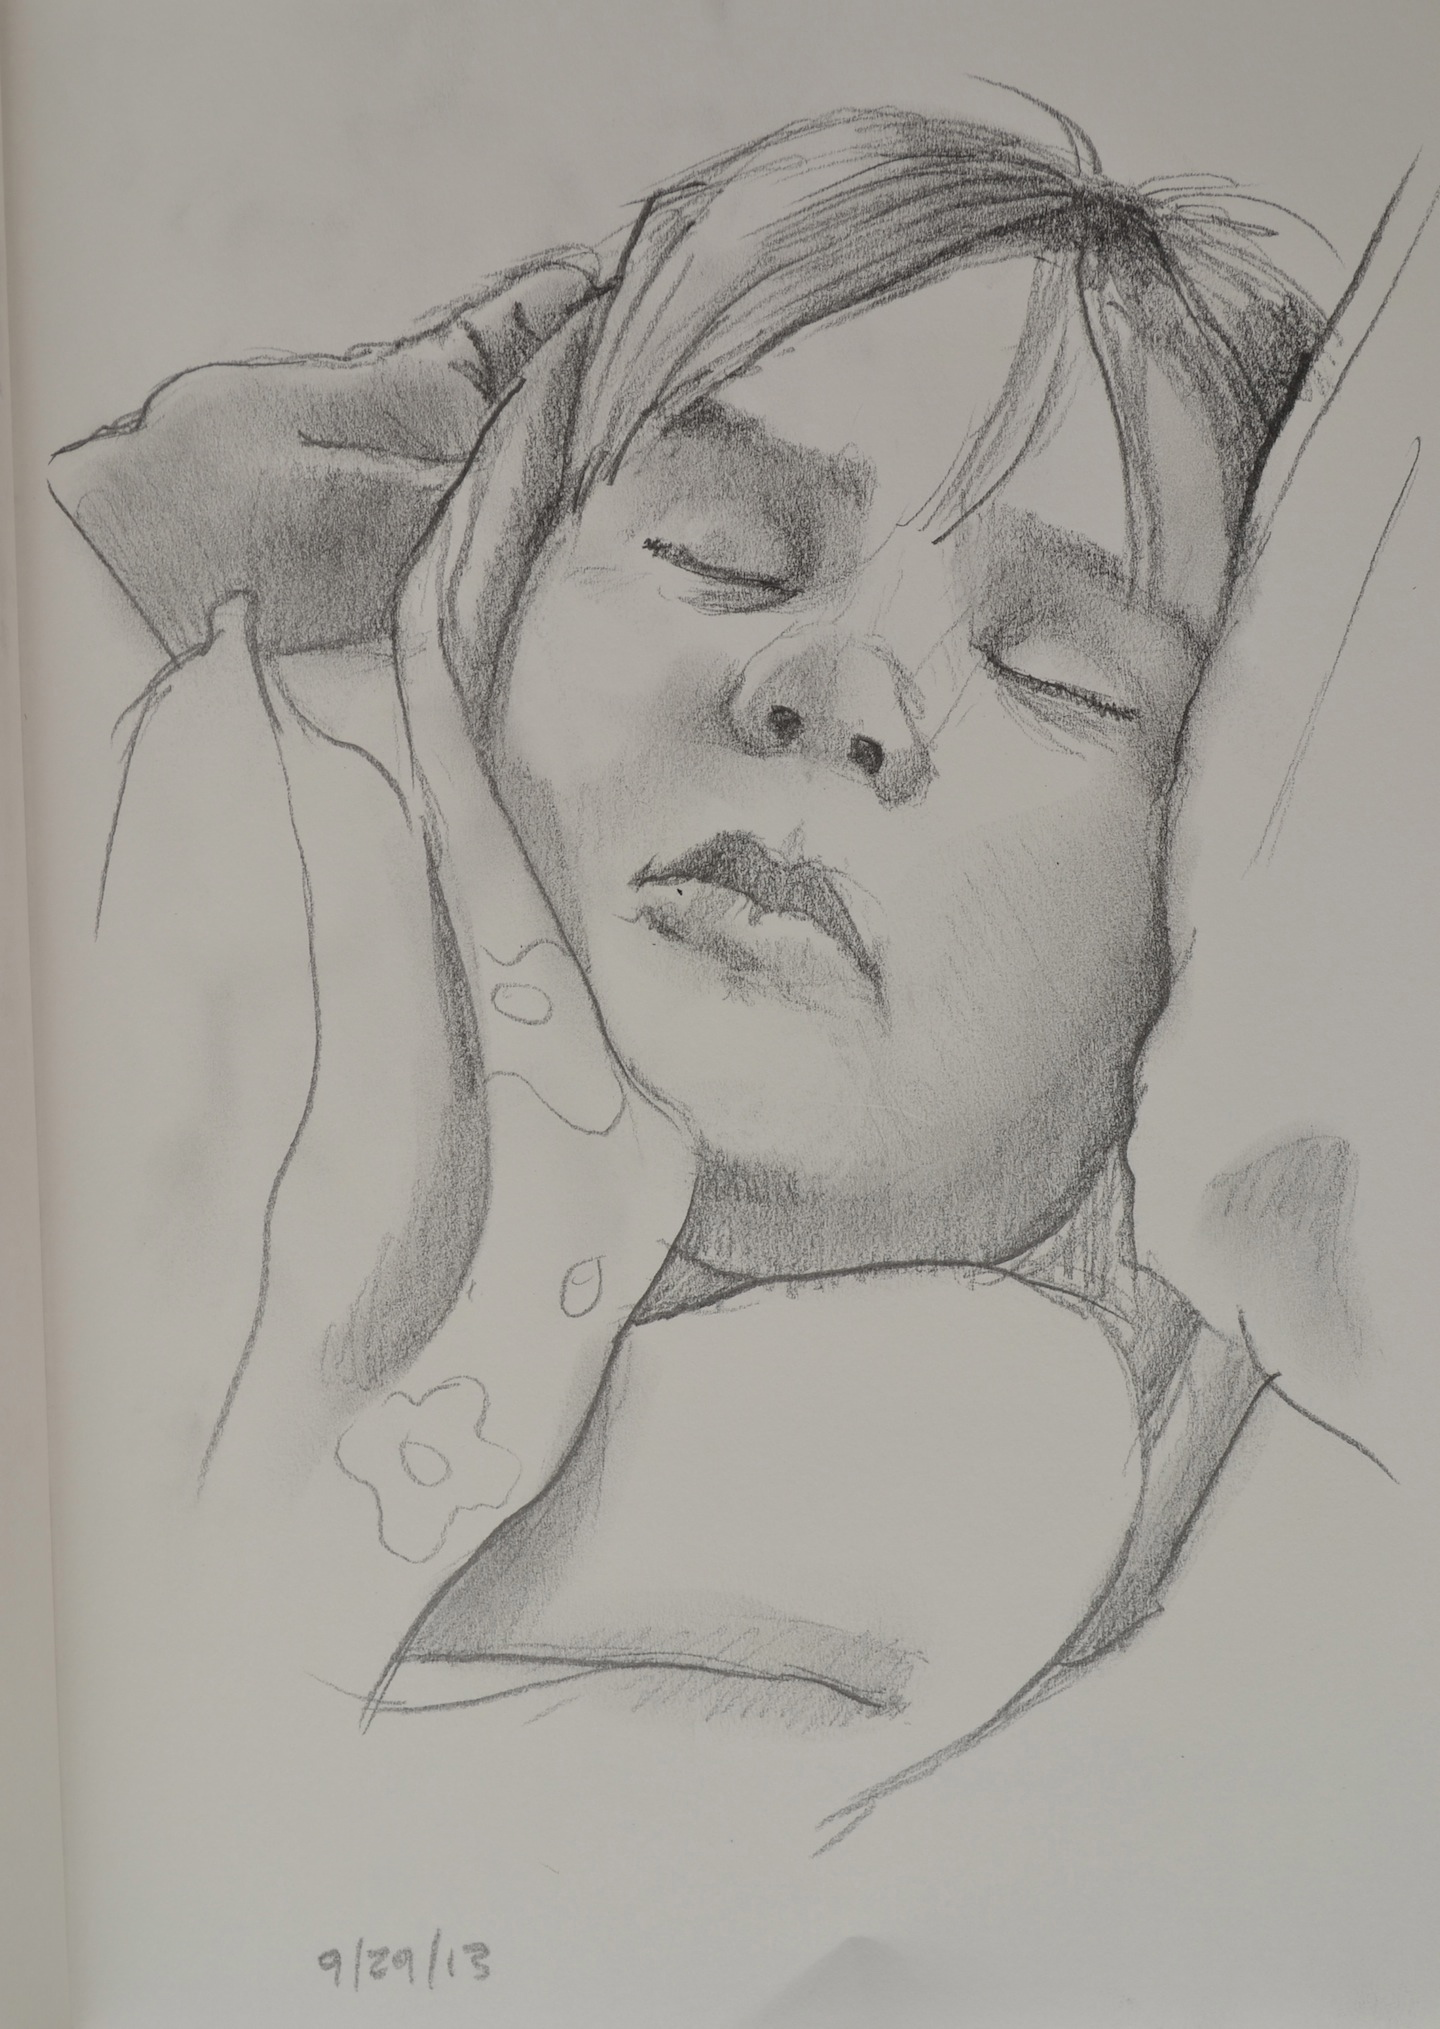 Sleeping child drawing by Jonathan Fenske